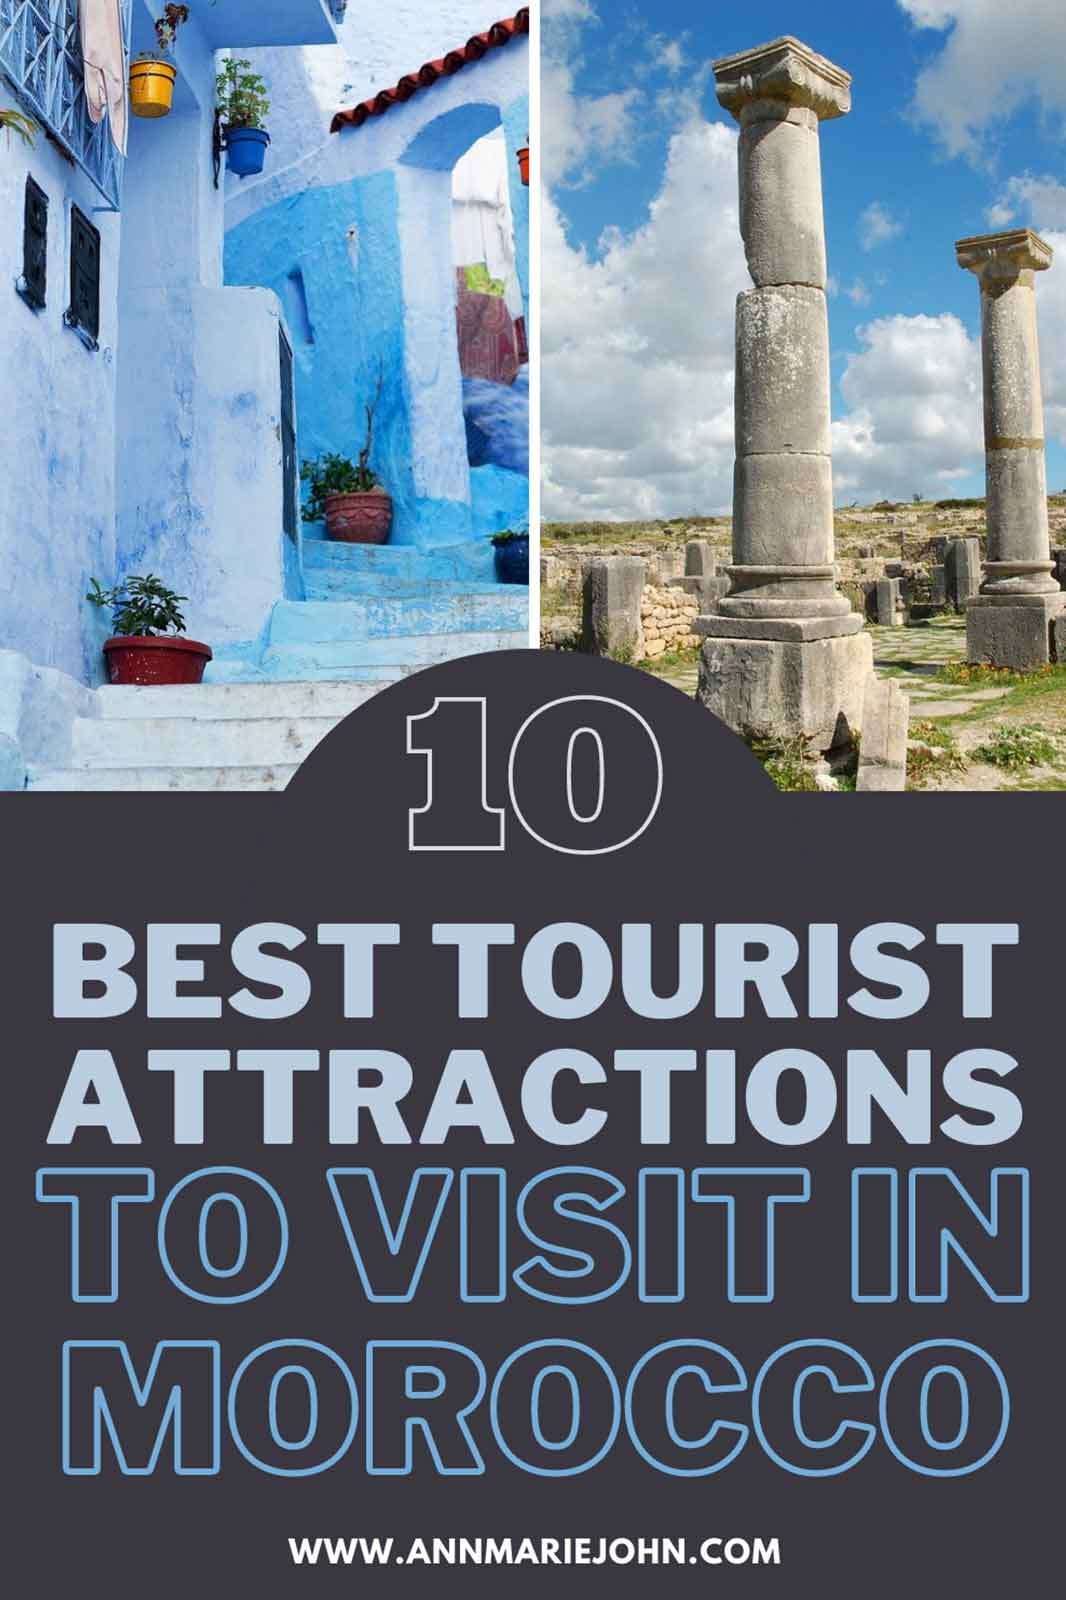 10 Best Tourist Attractions to Visit in Morocco